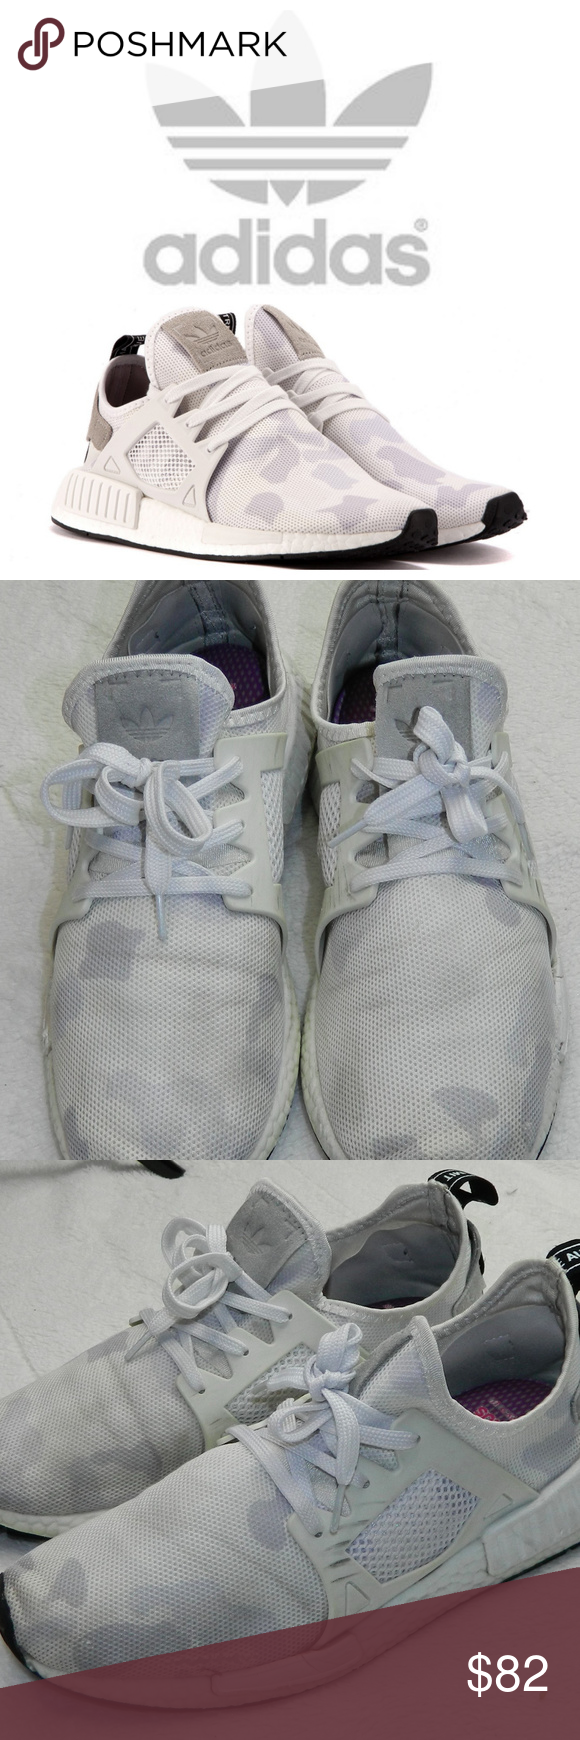 736204a03785c ADIDAS NMD XRI Camo Patch SNEAKERS White Mens 10 Some wear here and there  to shoes---see photos. LOTS of life left!! New inserts in shoes---included  in ...